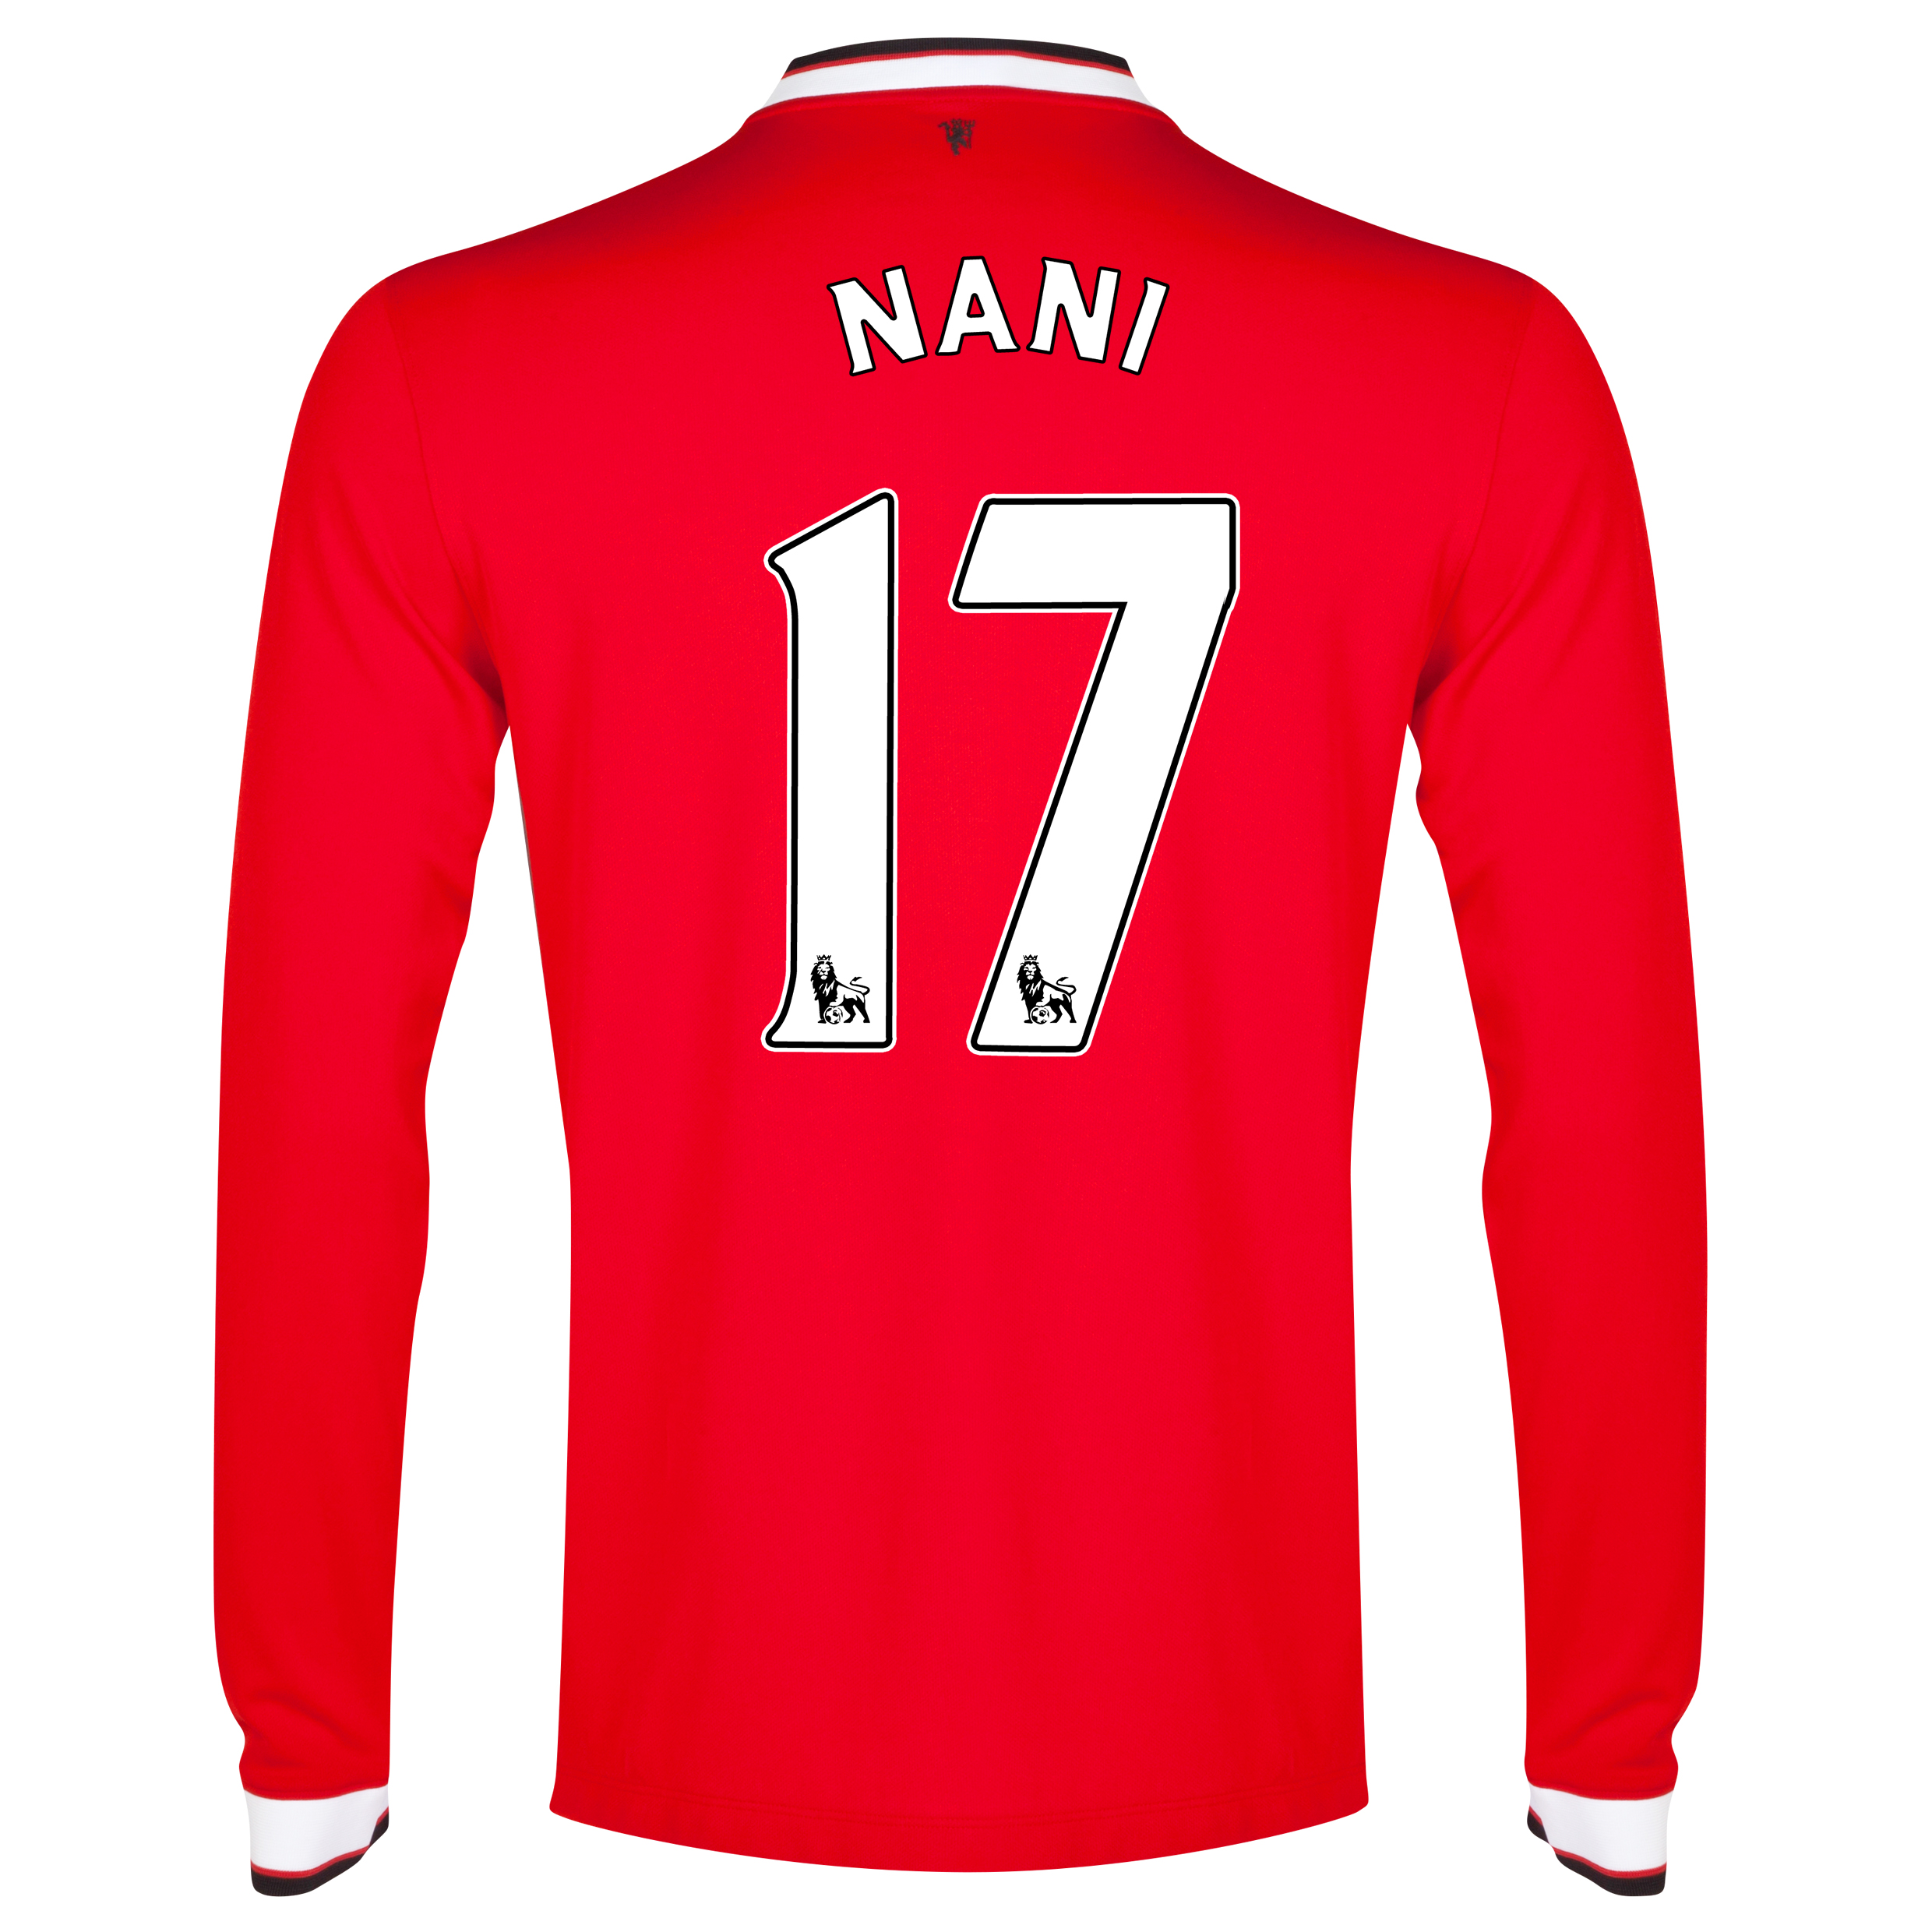 Manchester United Home Shirt 2014/15 - Long Sleeve - Kids Red with Nani 17 printing